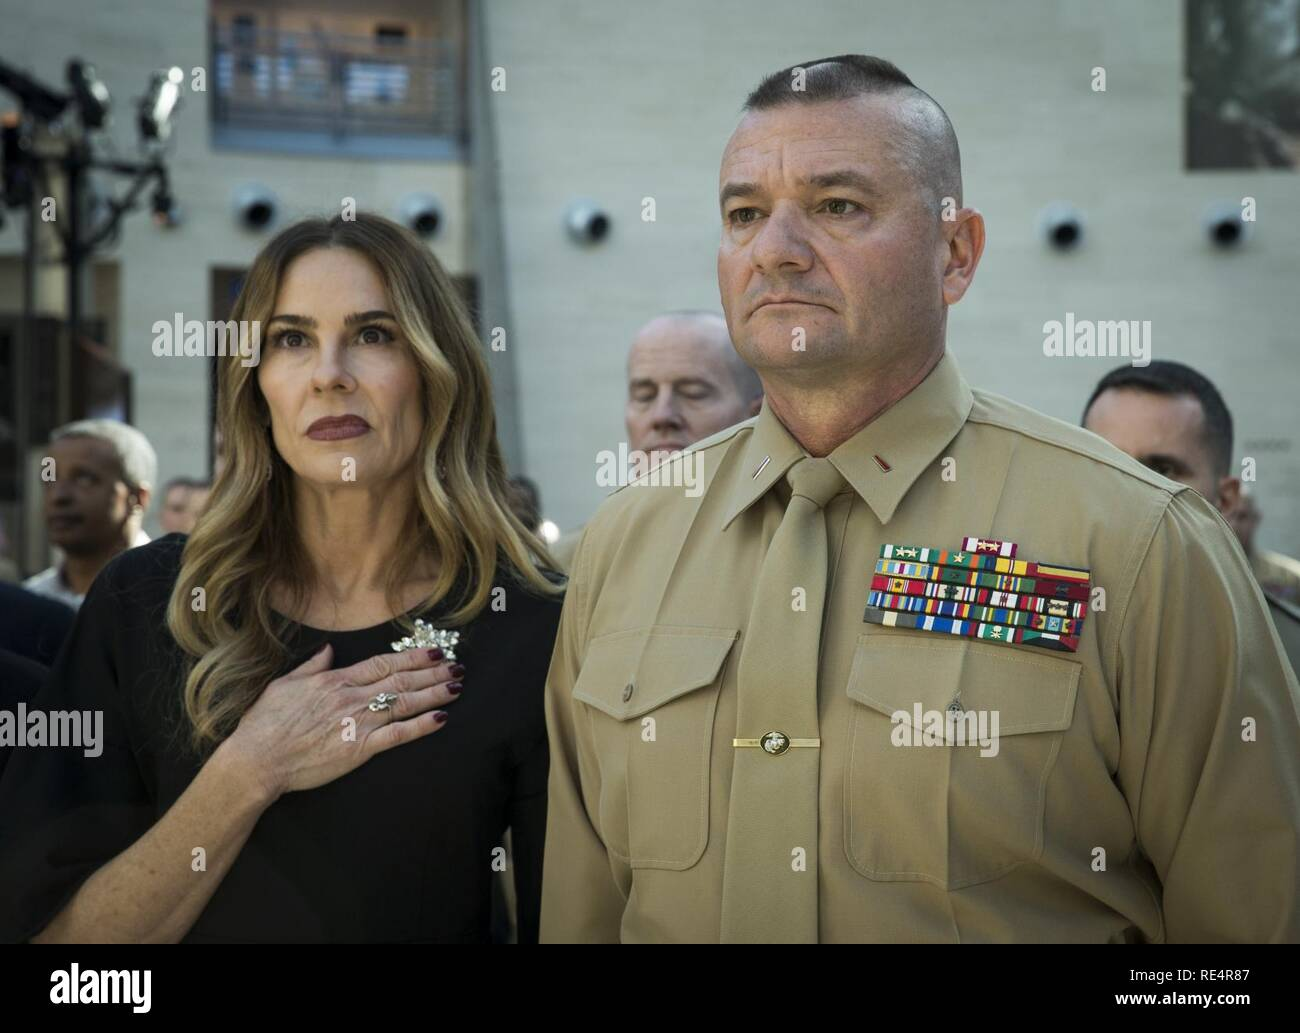 Chief Warrant Officer Stock Photos & Chief Warrant Officer